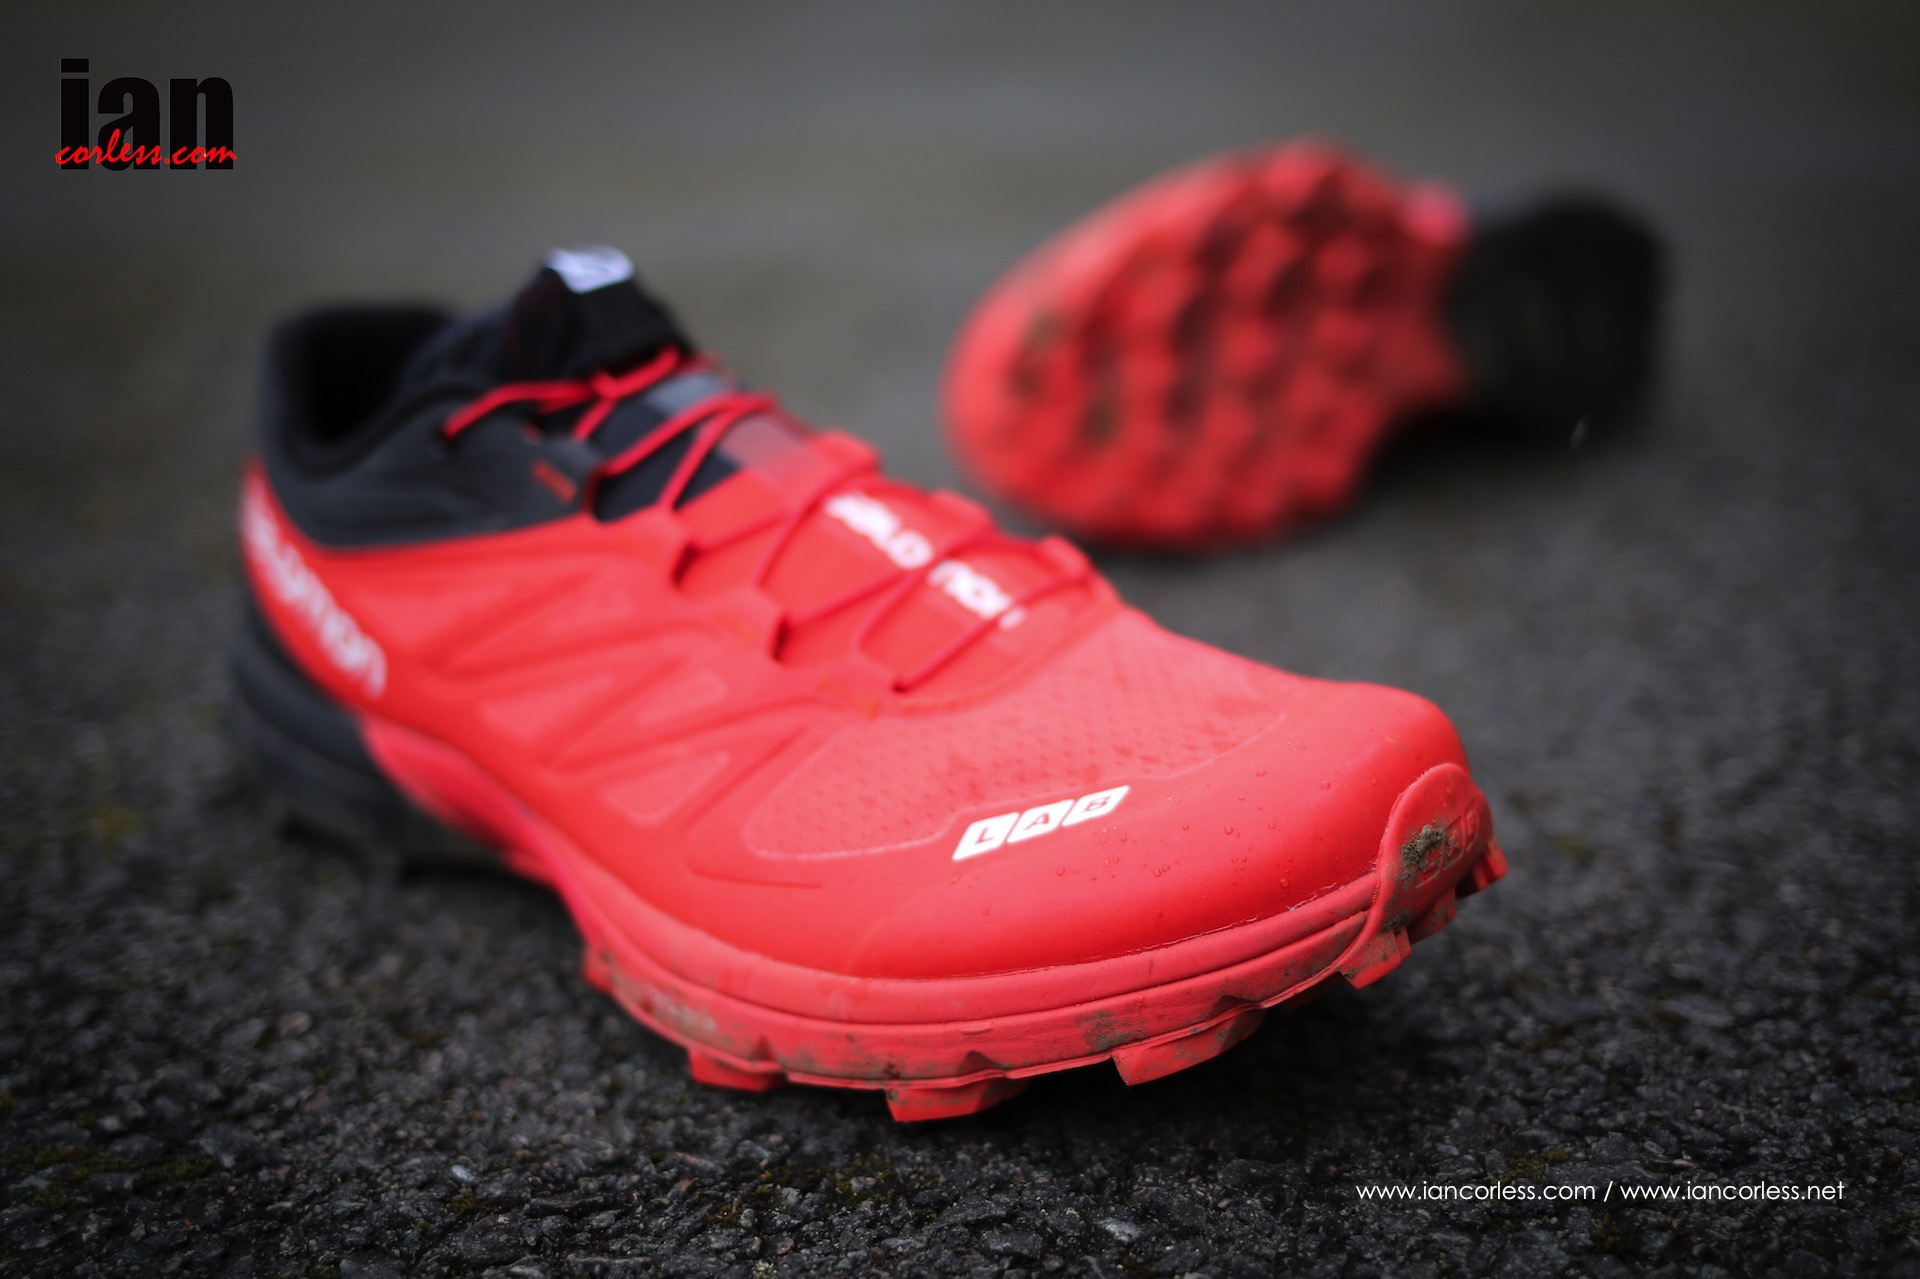 f0cf759d16 Salomon S-Lab Sense 4 Ultra SG (Soft Ground) – Review | iancorless ...